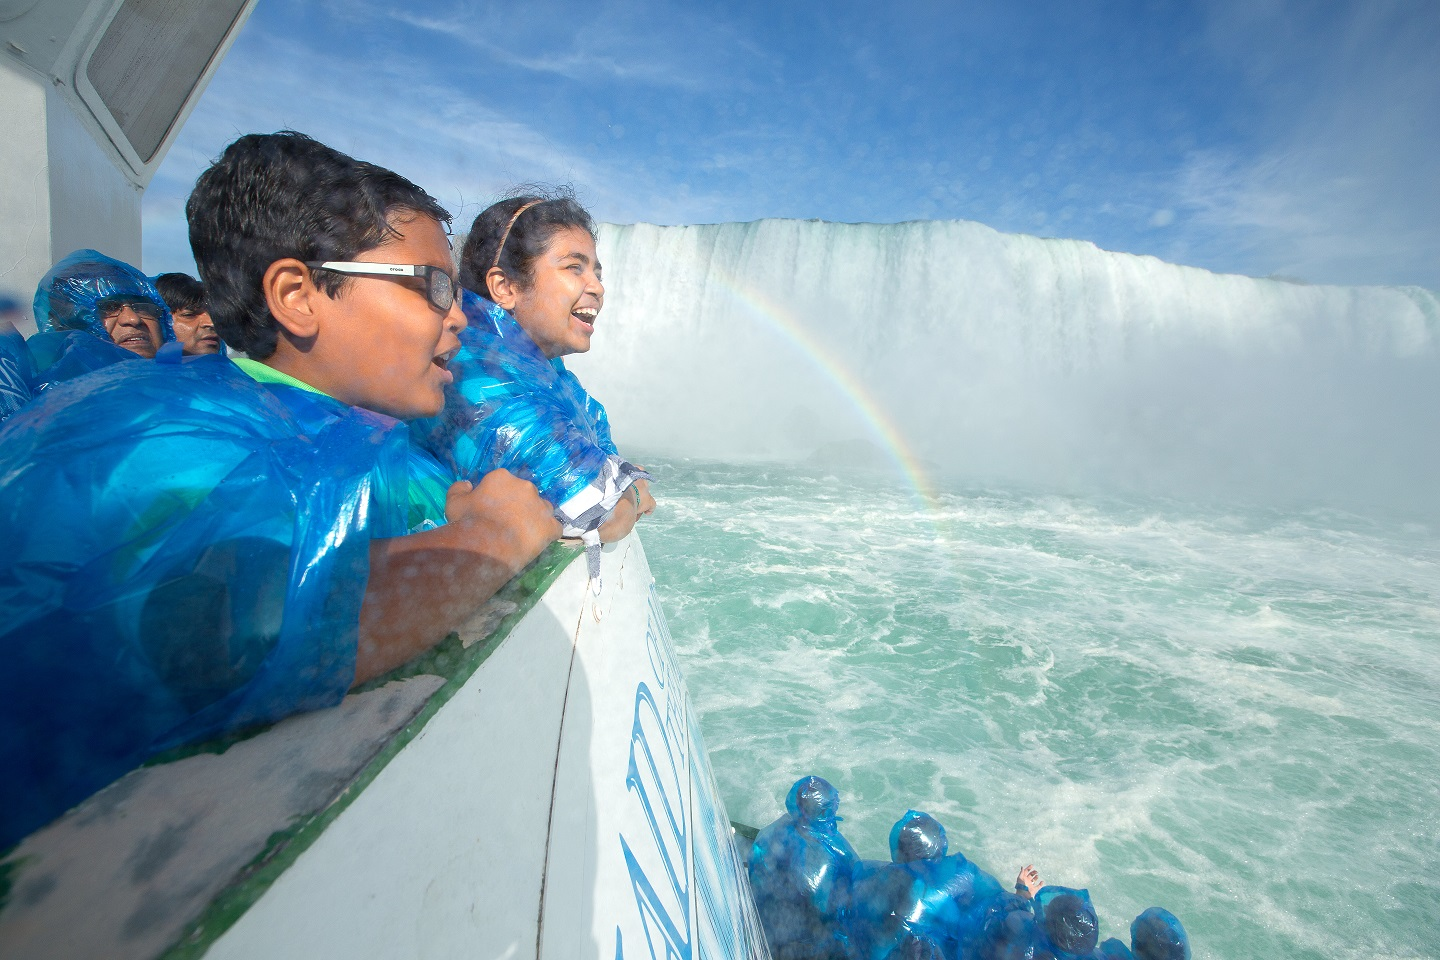 Maid of the Mist1 - Photo Credit Destination Niagara USA